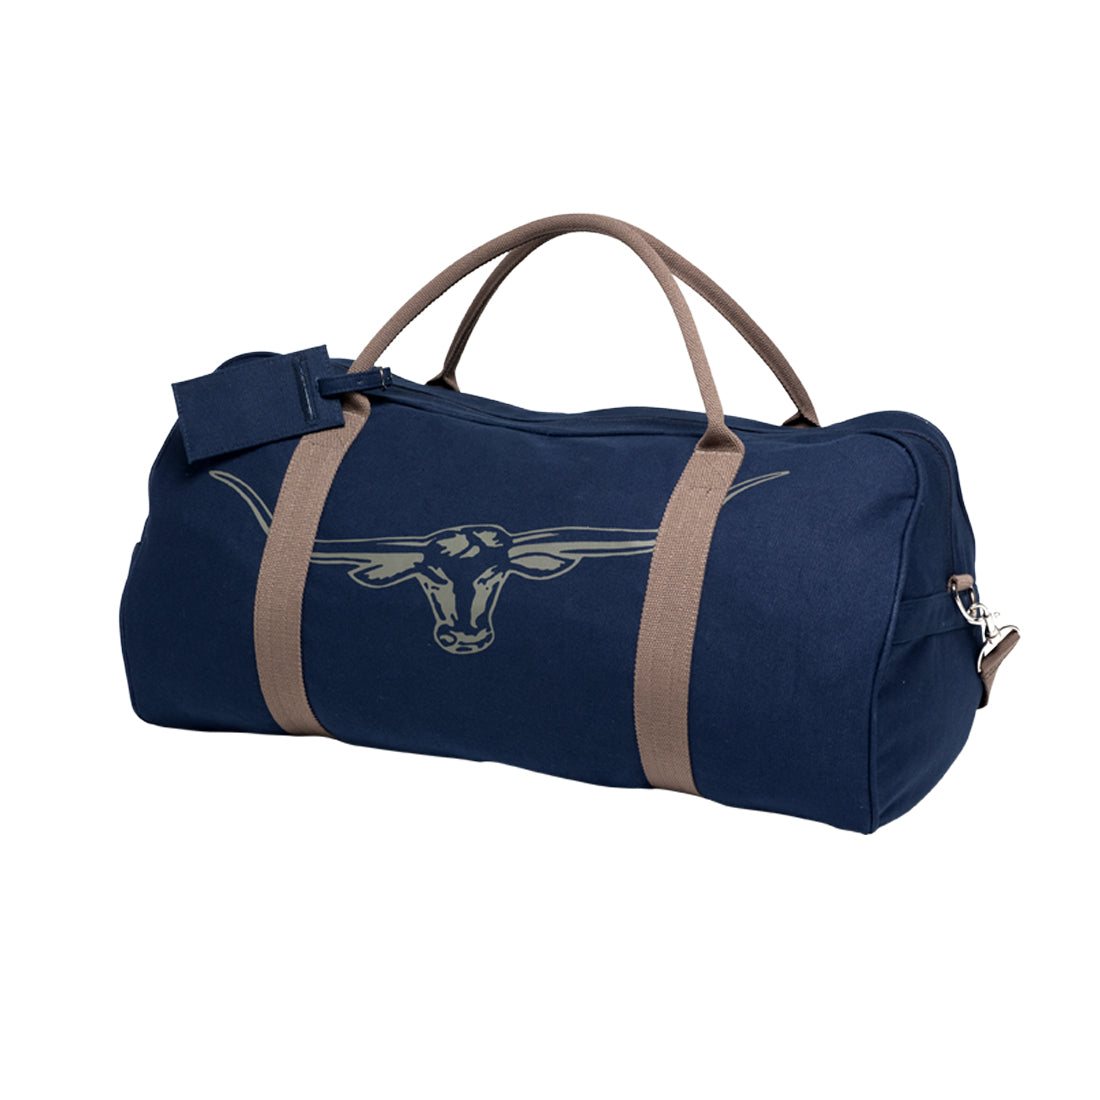 R.M.Williams Nanga Canvas Bag Navy/Silt